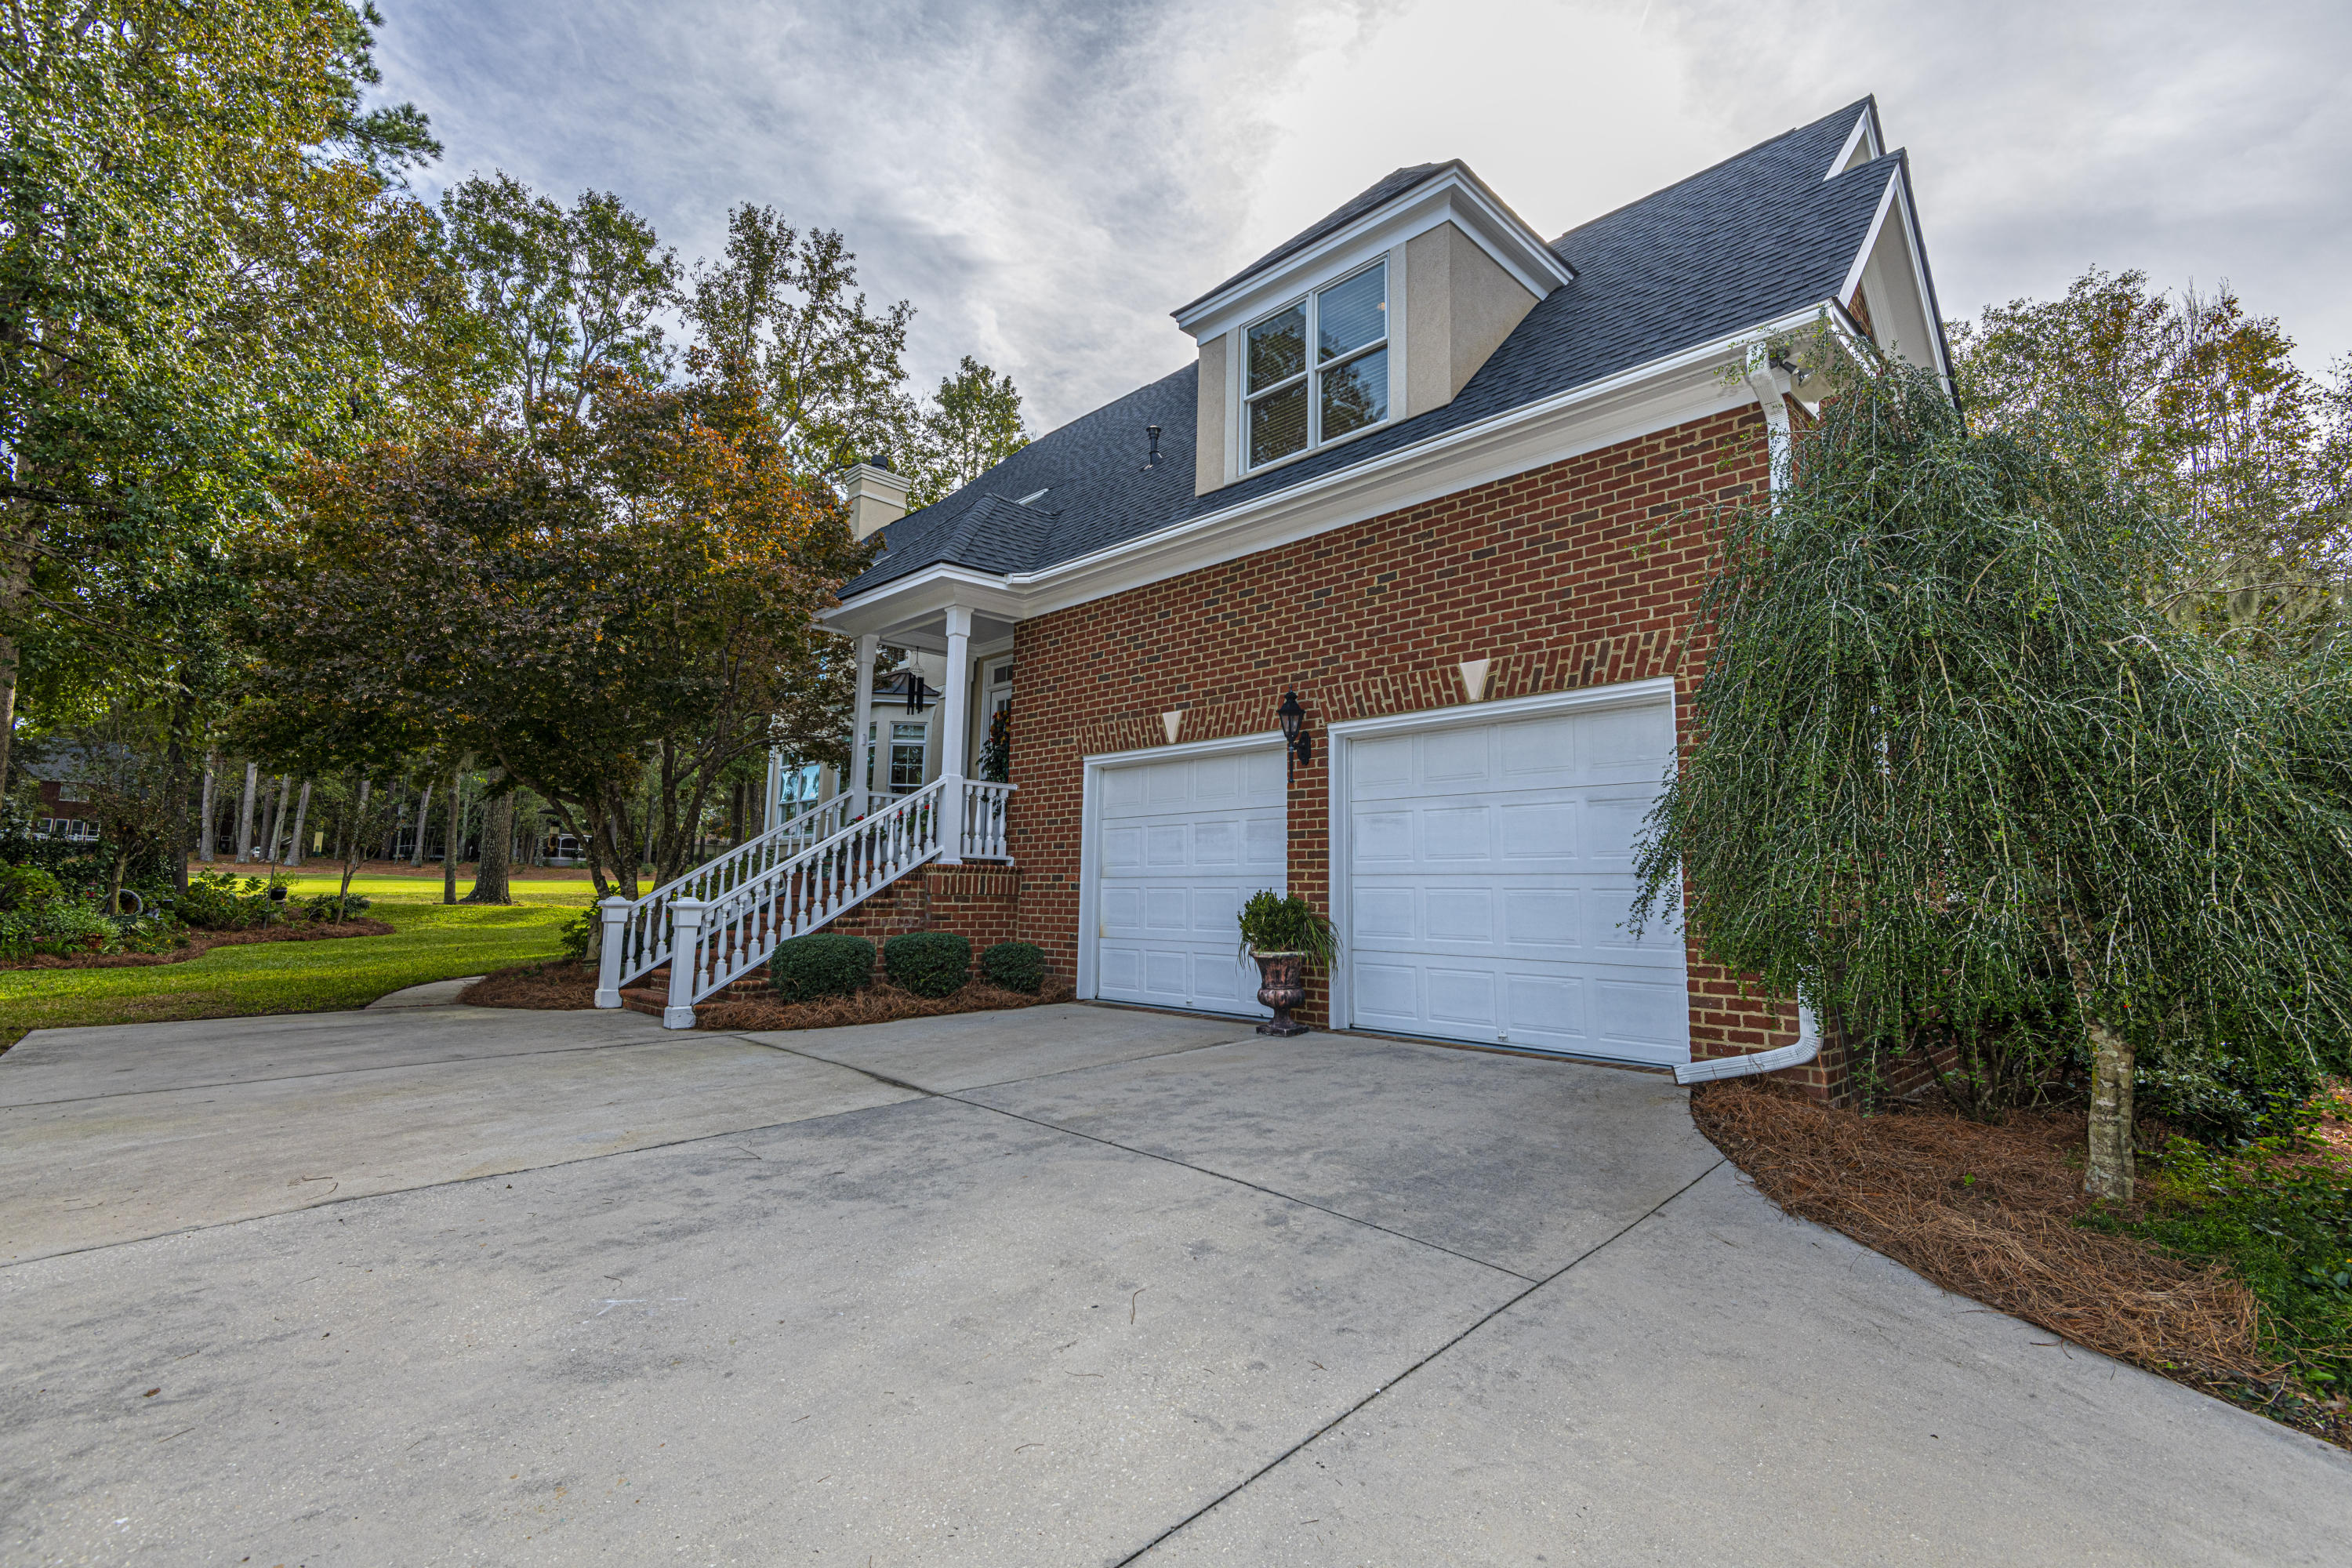 Coosaw Creek Country Club Homes For Sale - 8642 Fairway Woods, North Charleston, SC - 13